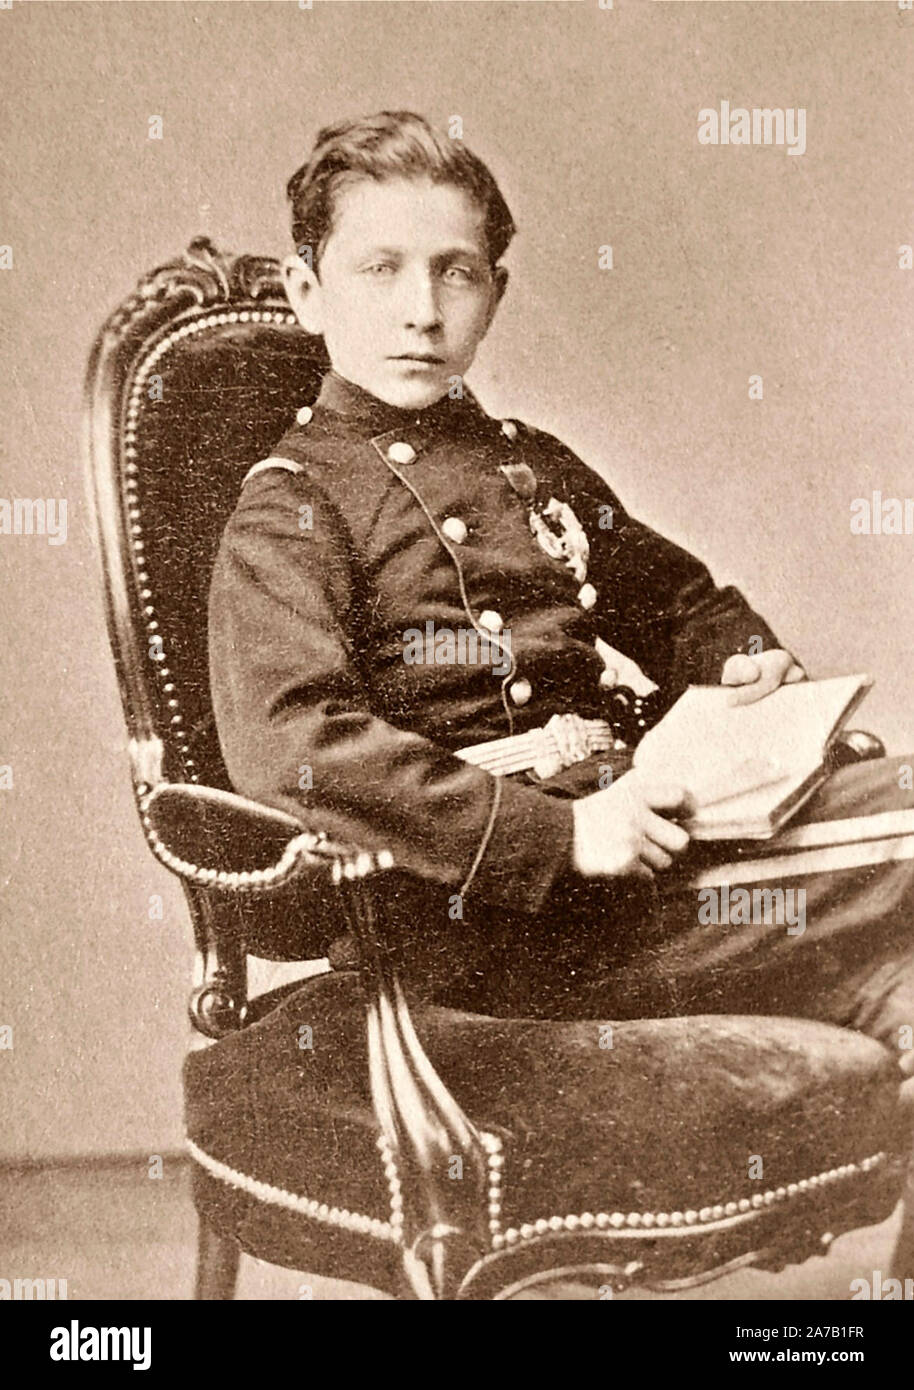 Louis Napoleon, Prince Imperial (1856-1879) at age 14. June 18, 1870 Stock Photo